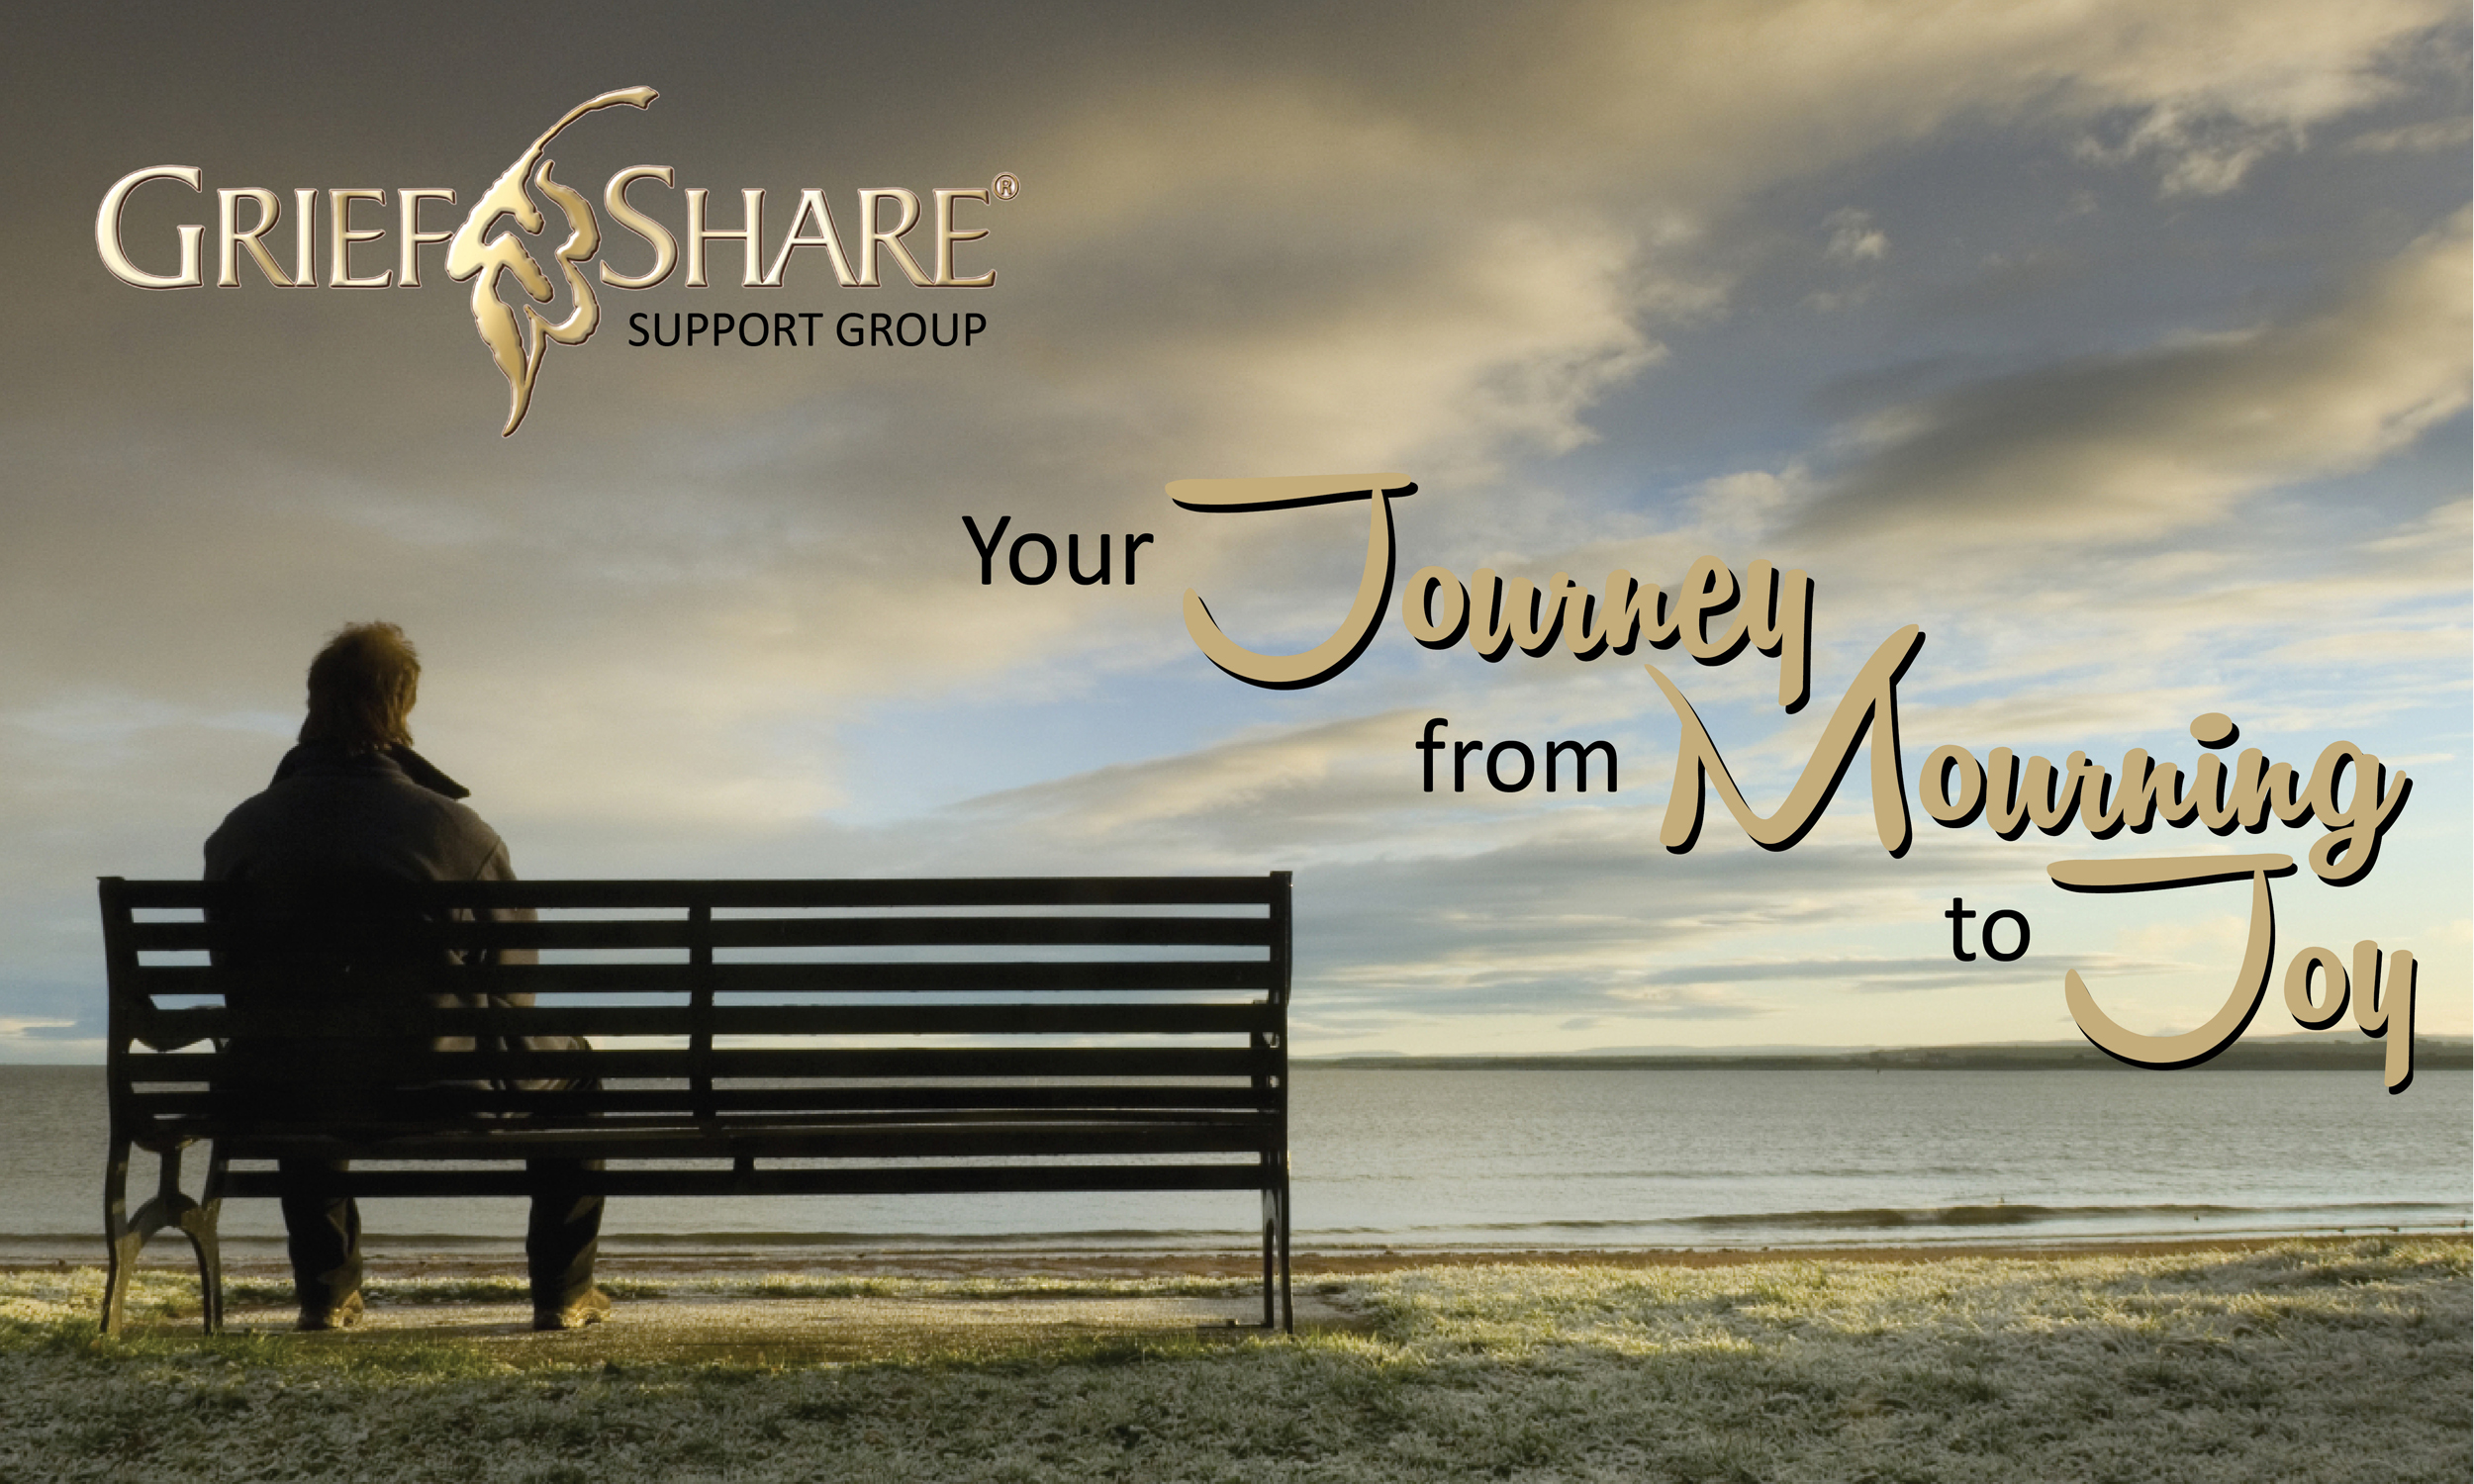 Grief Share Support Group - Most everyone encounters grief in their lives at one time or another.Grief Share meets weekly to provide support and encouragementfor your grief journey. You'll find a warm, caring environment.Next course begins November 5th.Learn More…